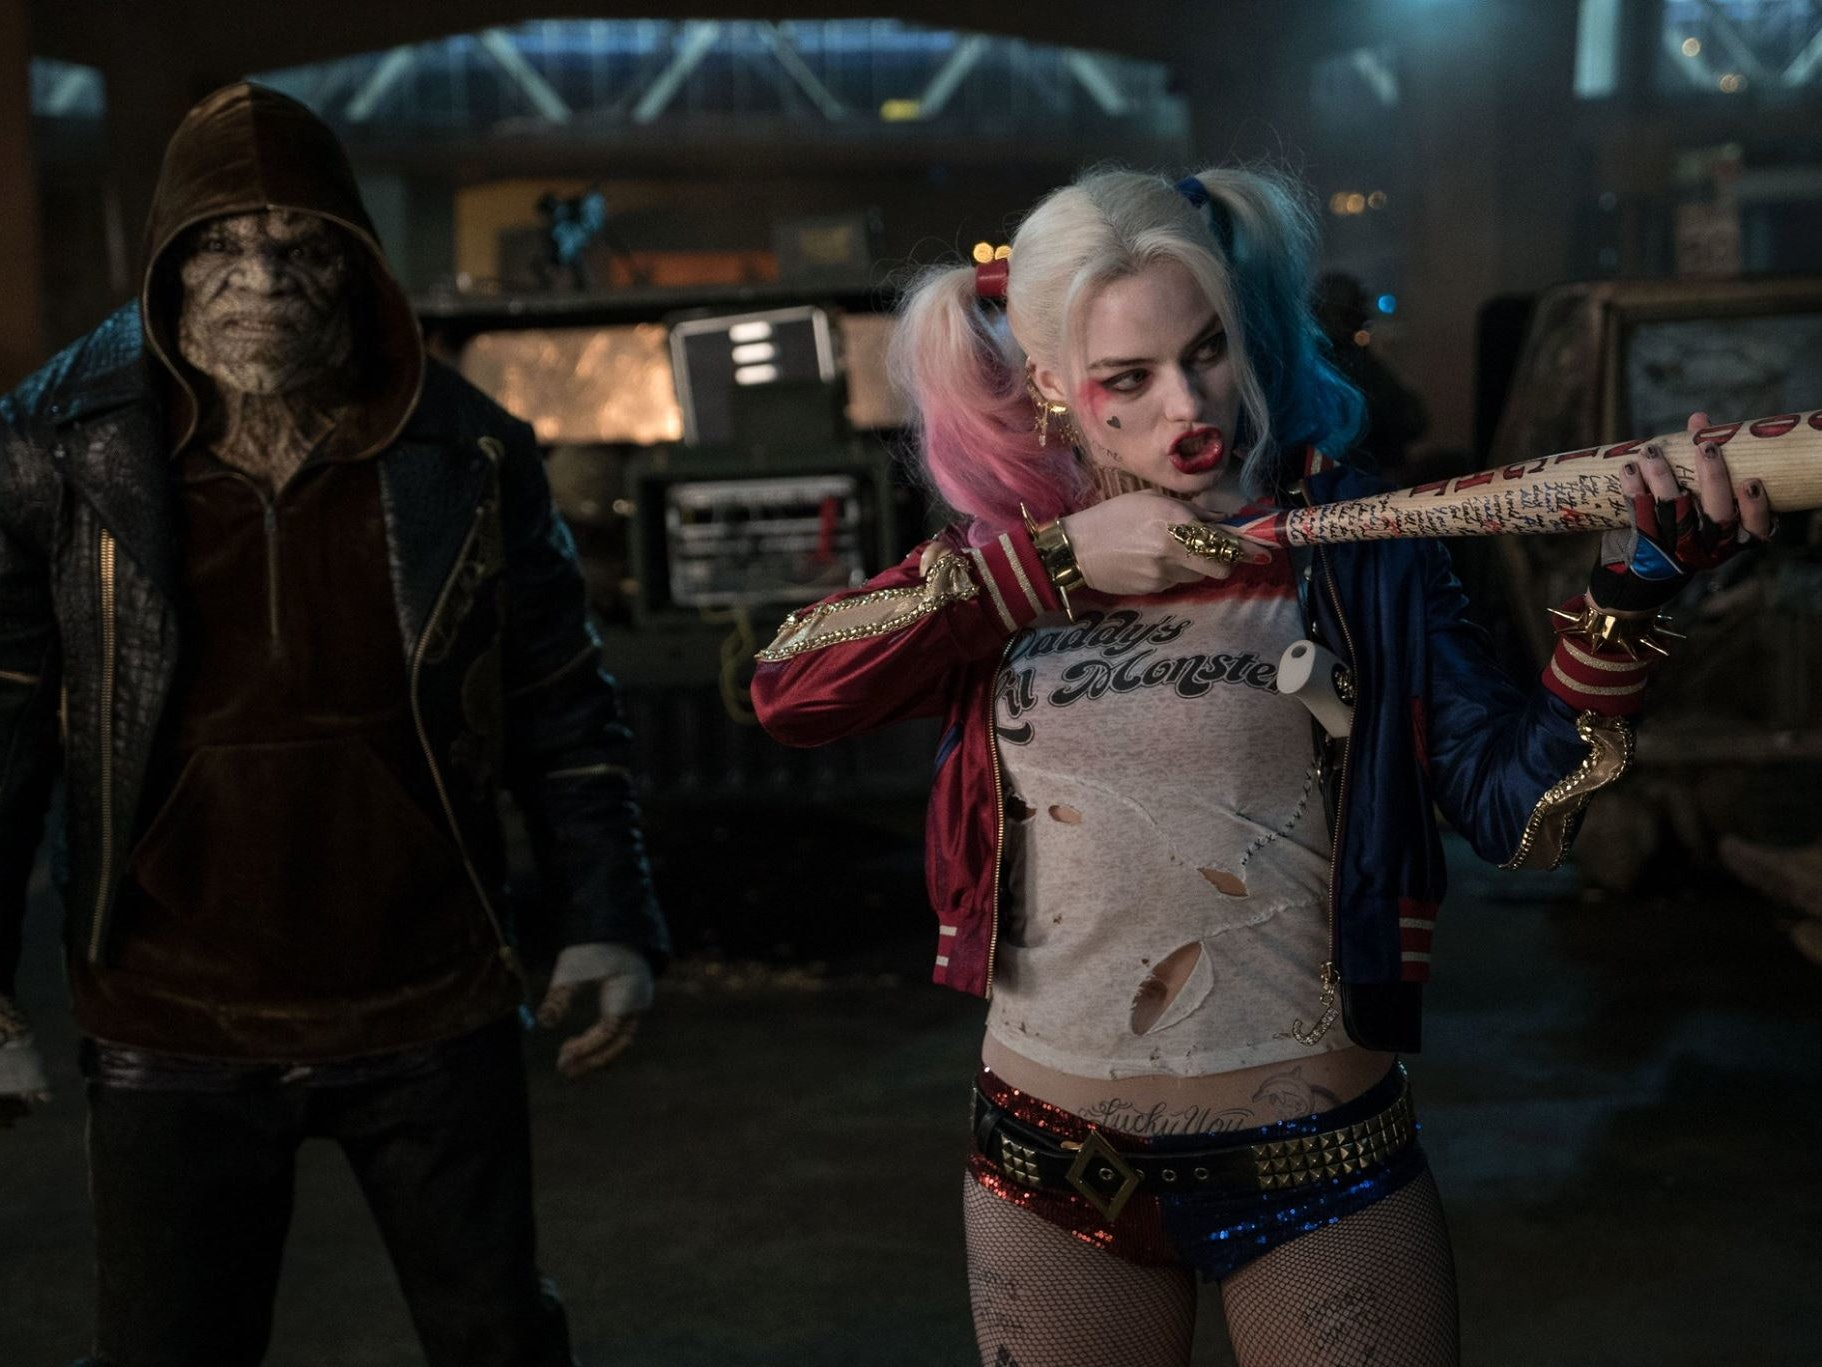 Harley Quinn Is Clearly Crazy. Can America Root for an Insane Woman?